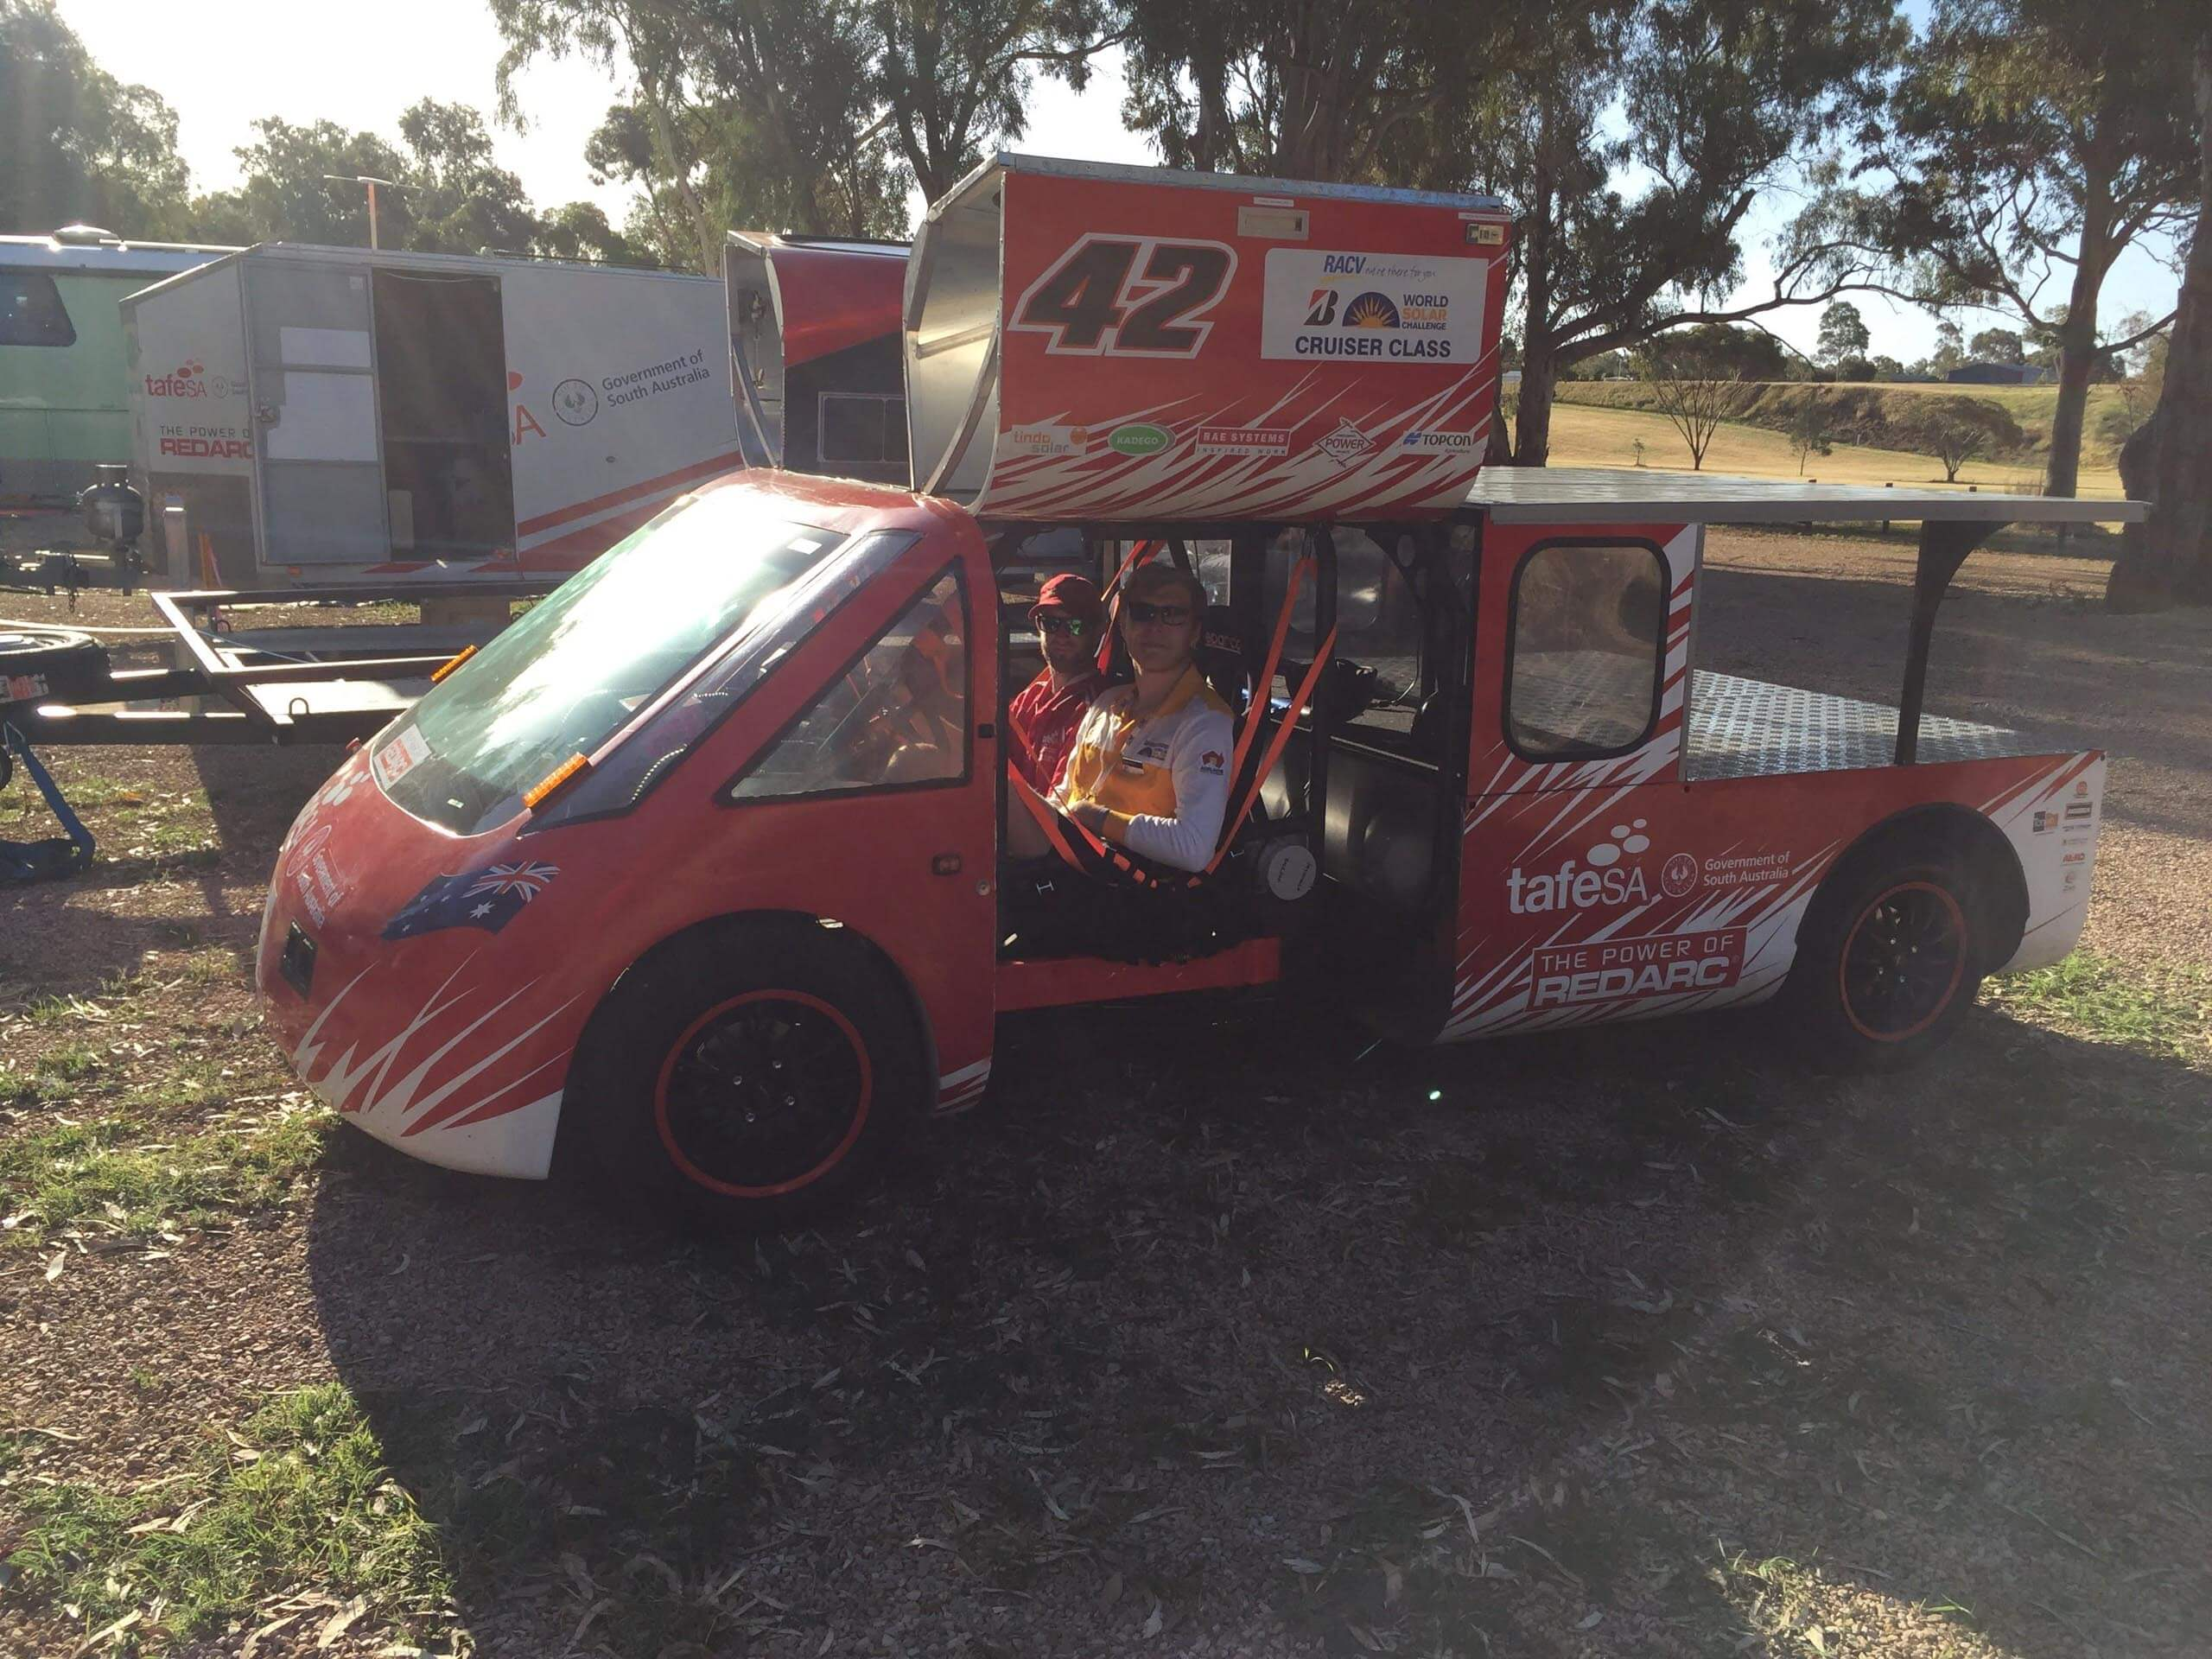 Alex takes a ride in the TAFE SA Solar Spirit at the final campsite, 100km North of Adelaide